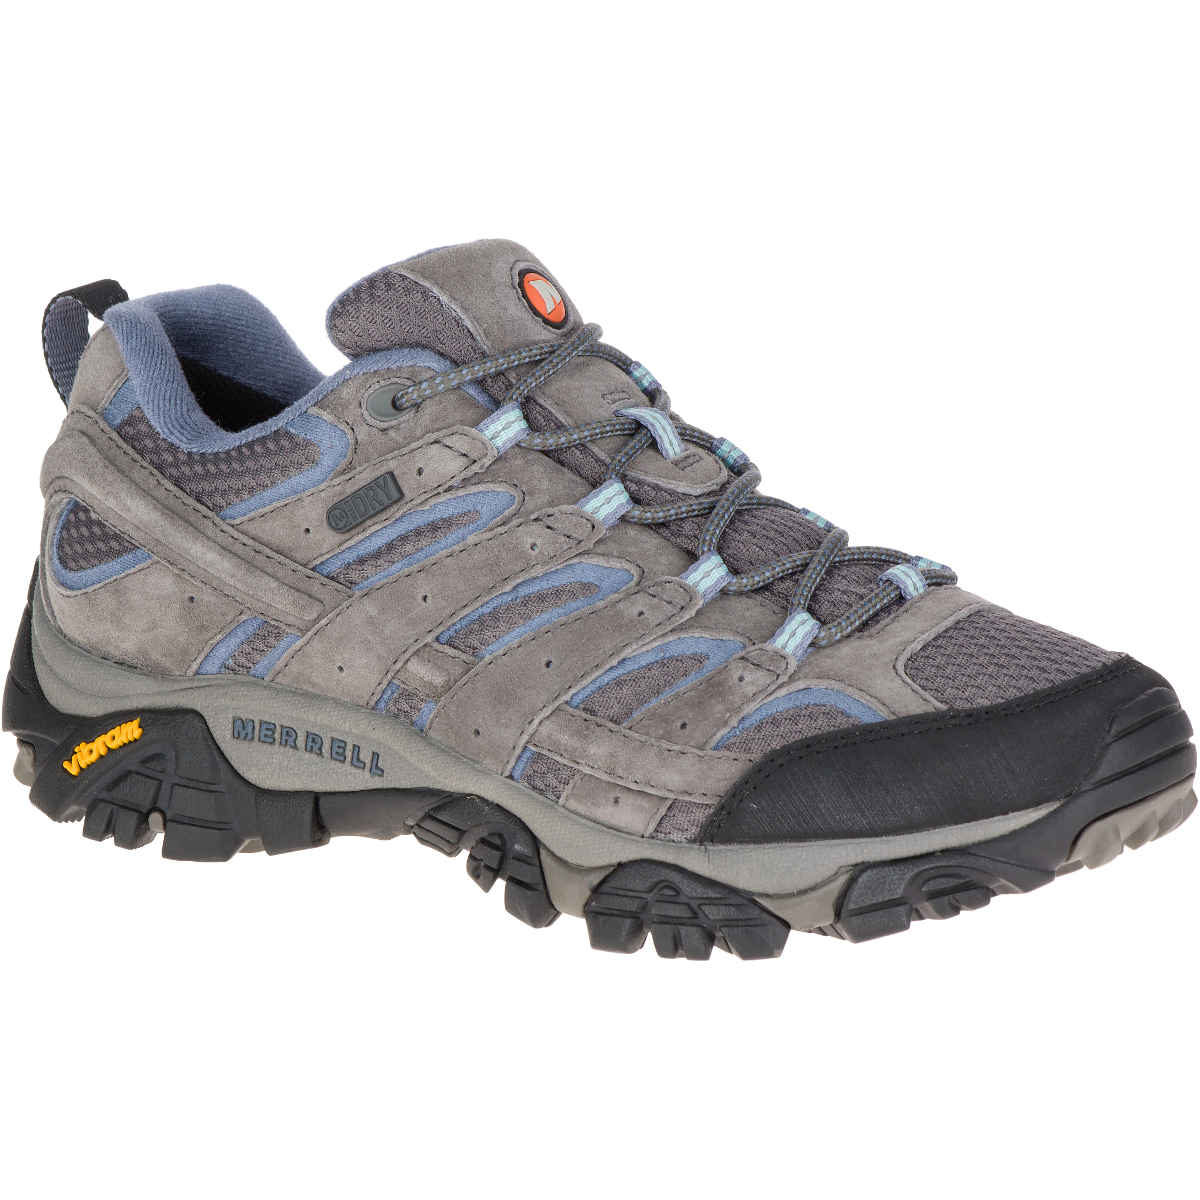 Merrell Women's Moab 2 Waterproof Hiking Shoes, Granite, Wide - Black, 6.5